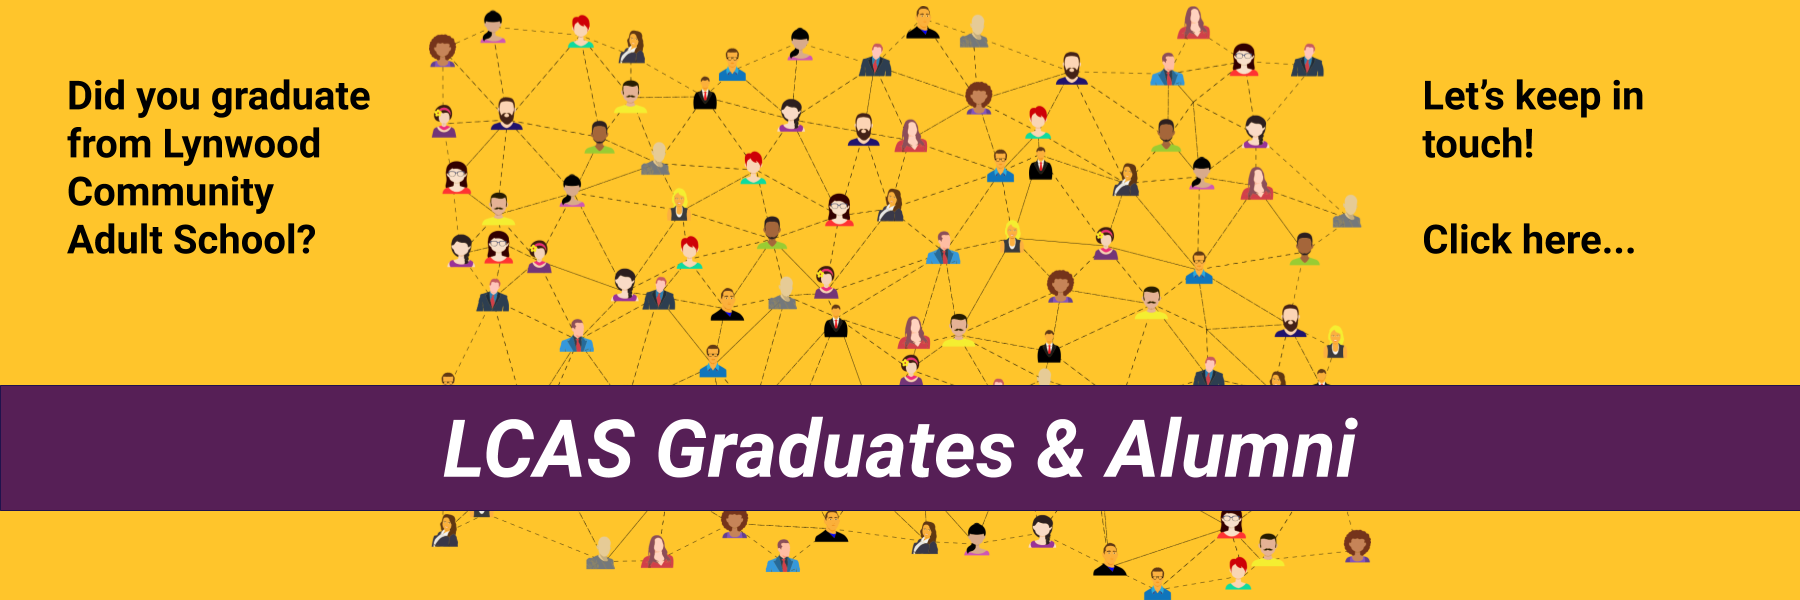 LCAS Graduates and Alumni Did you Graduate from Lynwood Community Adult School? Let's keep in touch! Click here...